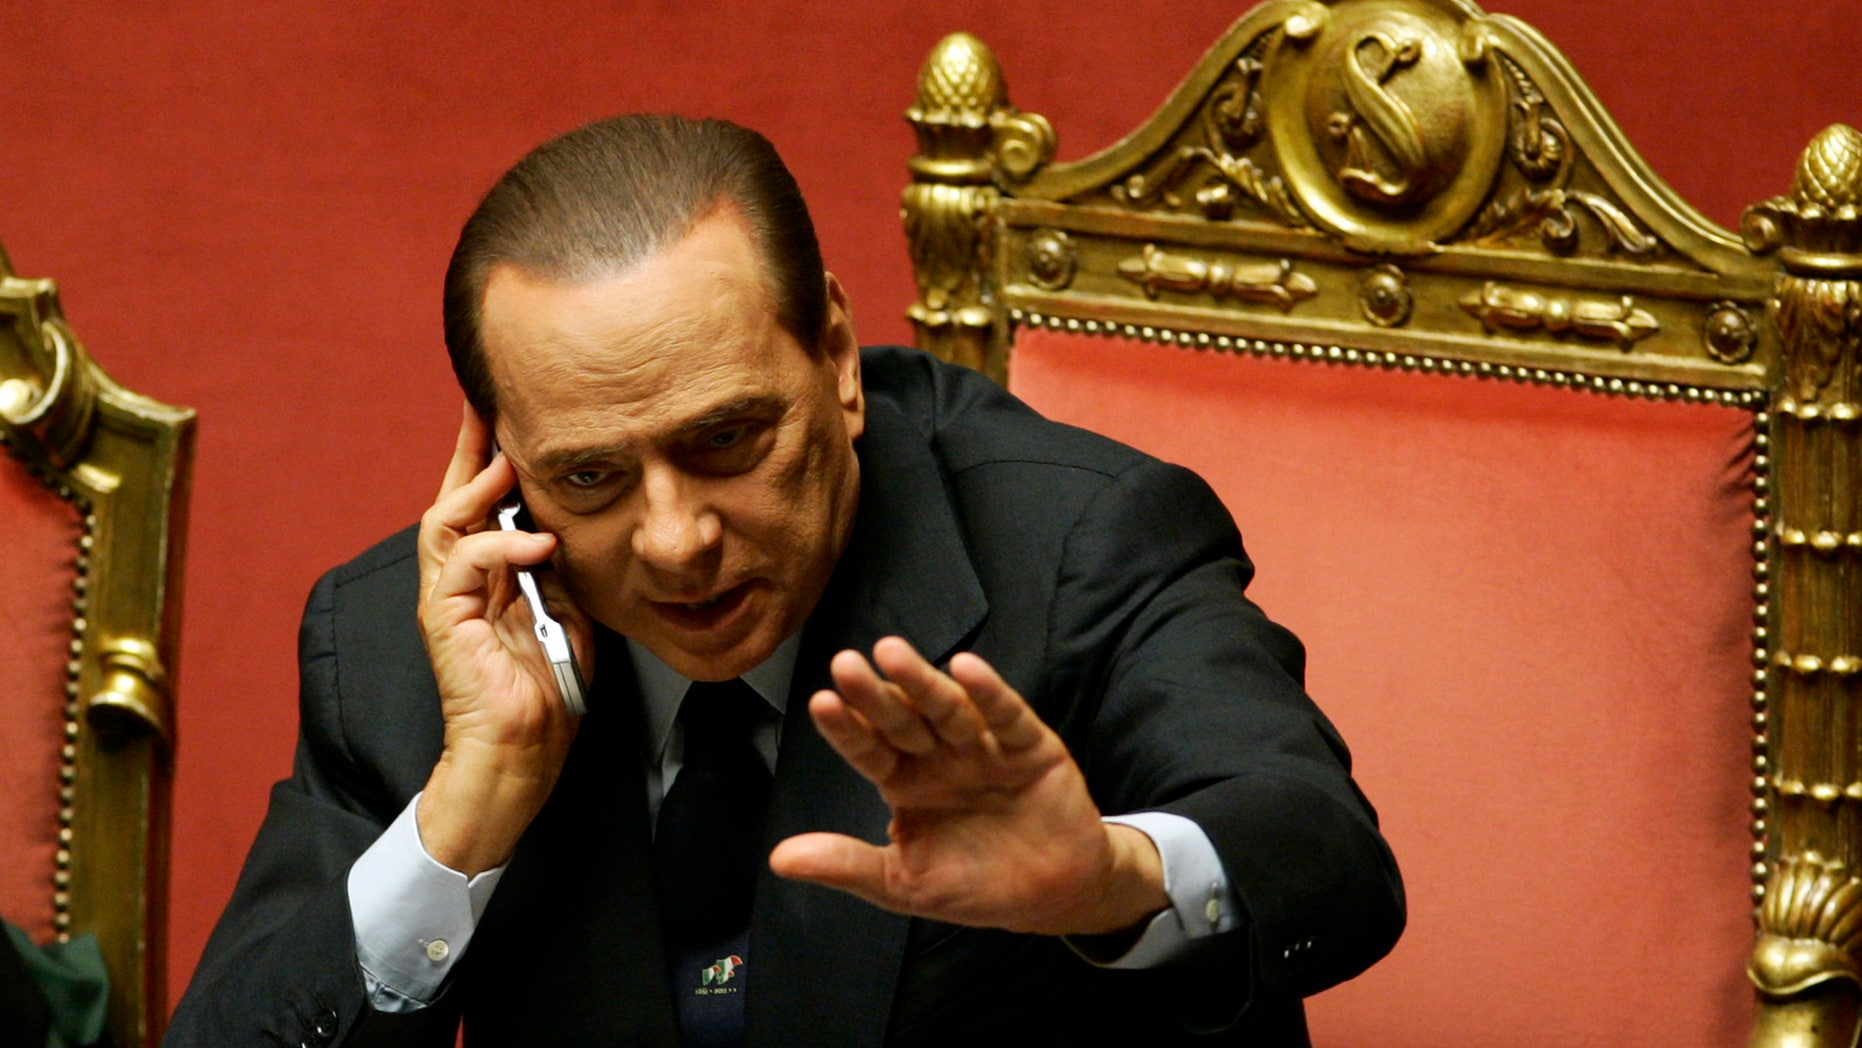 FILE - In this Tuesday, Dec. 14, 2010 file photo, Silvio Berlusconi gestures as he speaks on a mobile phone prior to a parliament debate, at the Senate in Rome, Italy. Berlusconi is among the world leaders who are trying to cope following allegations of massive electronic monitoring by the U.S. National Security Agency (AP Photo/Riccardo De Luca, File)